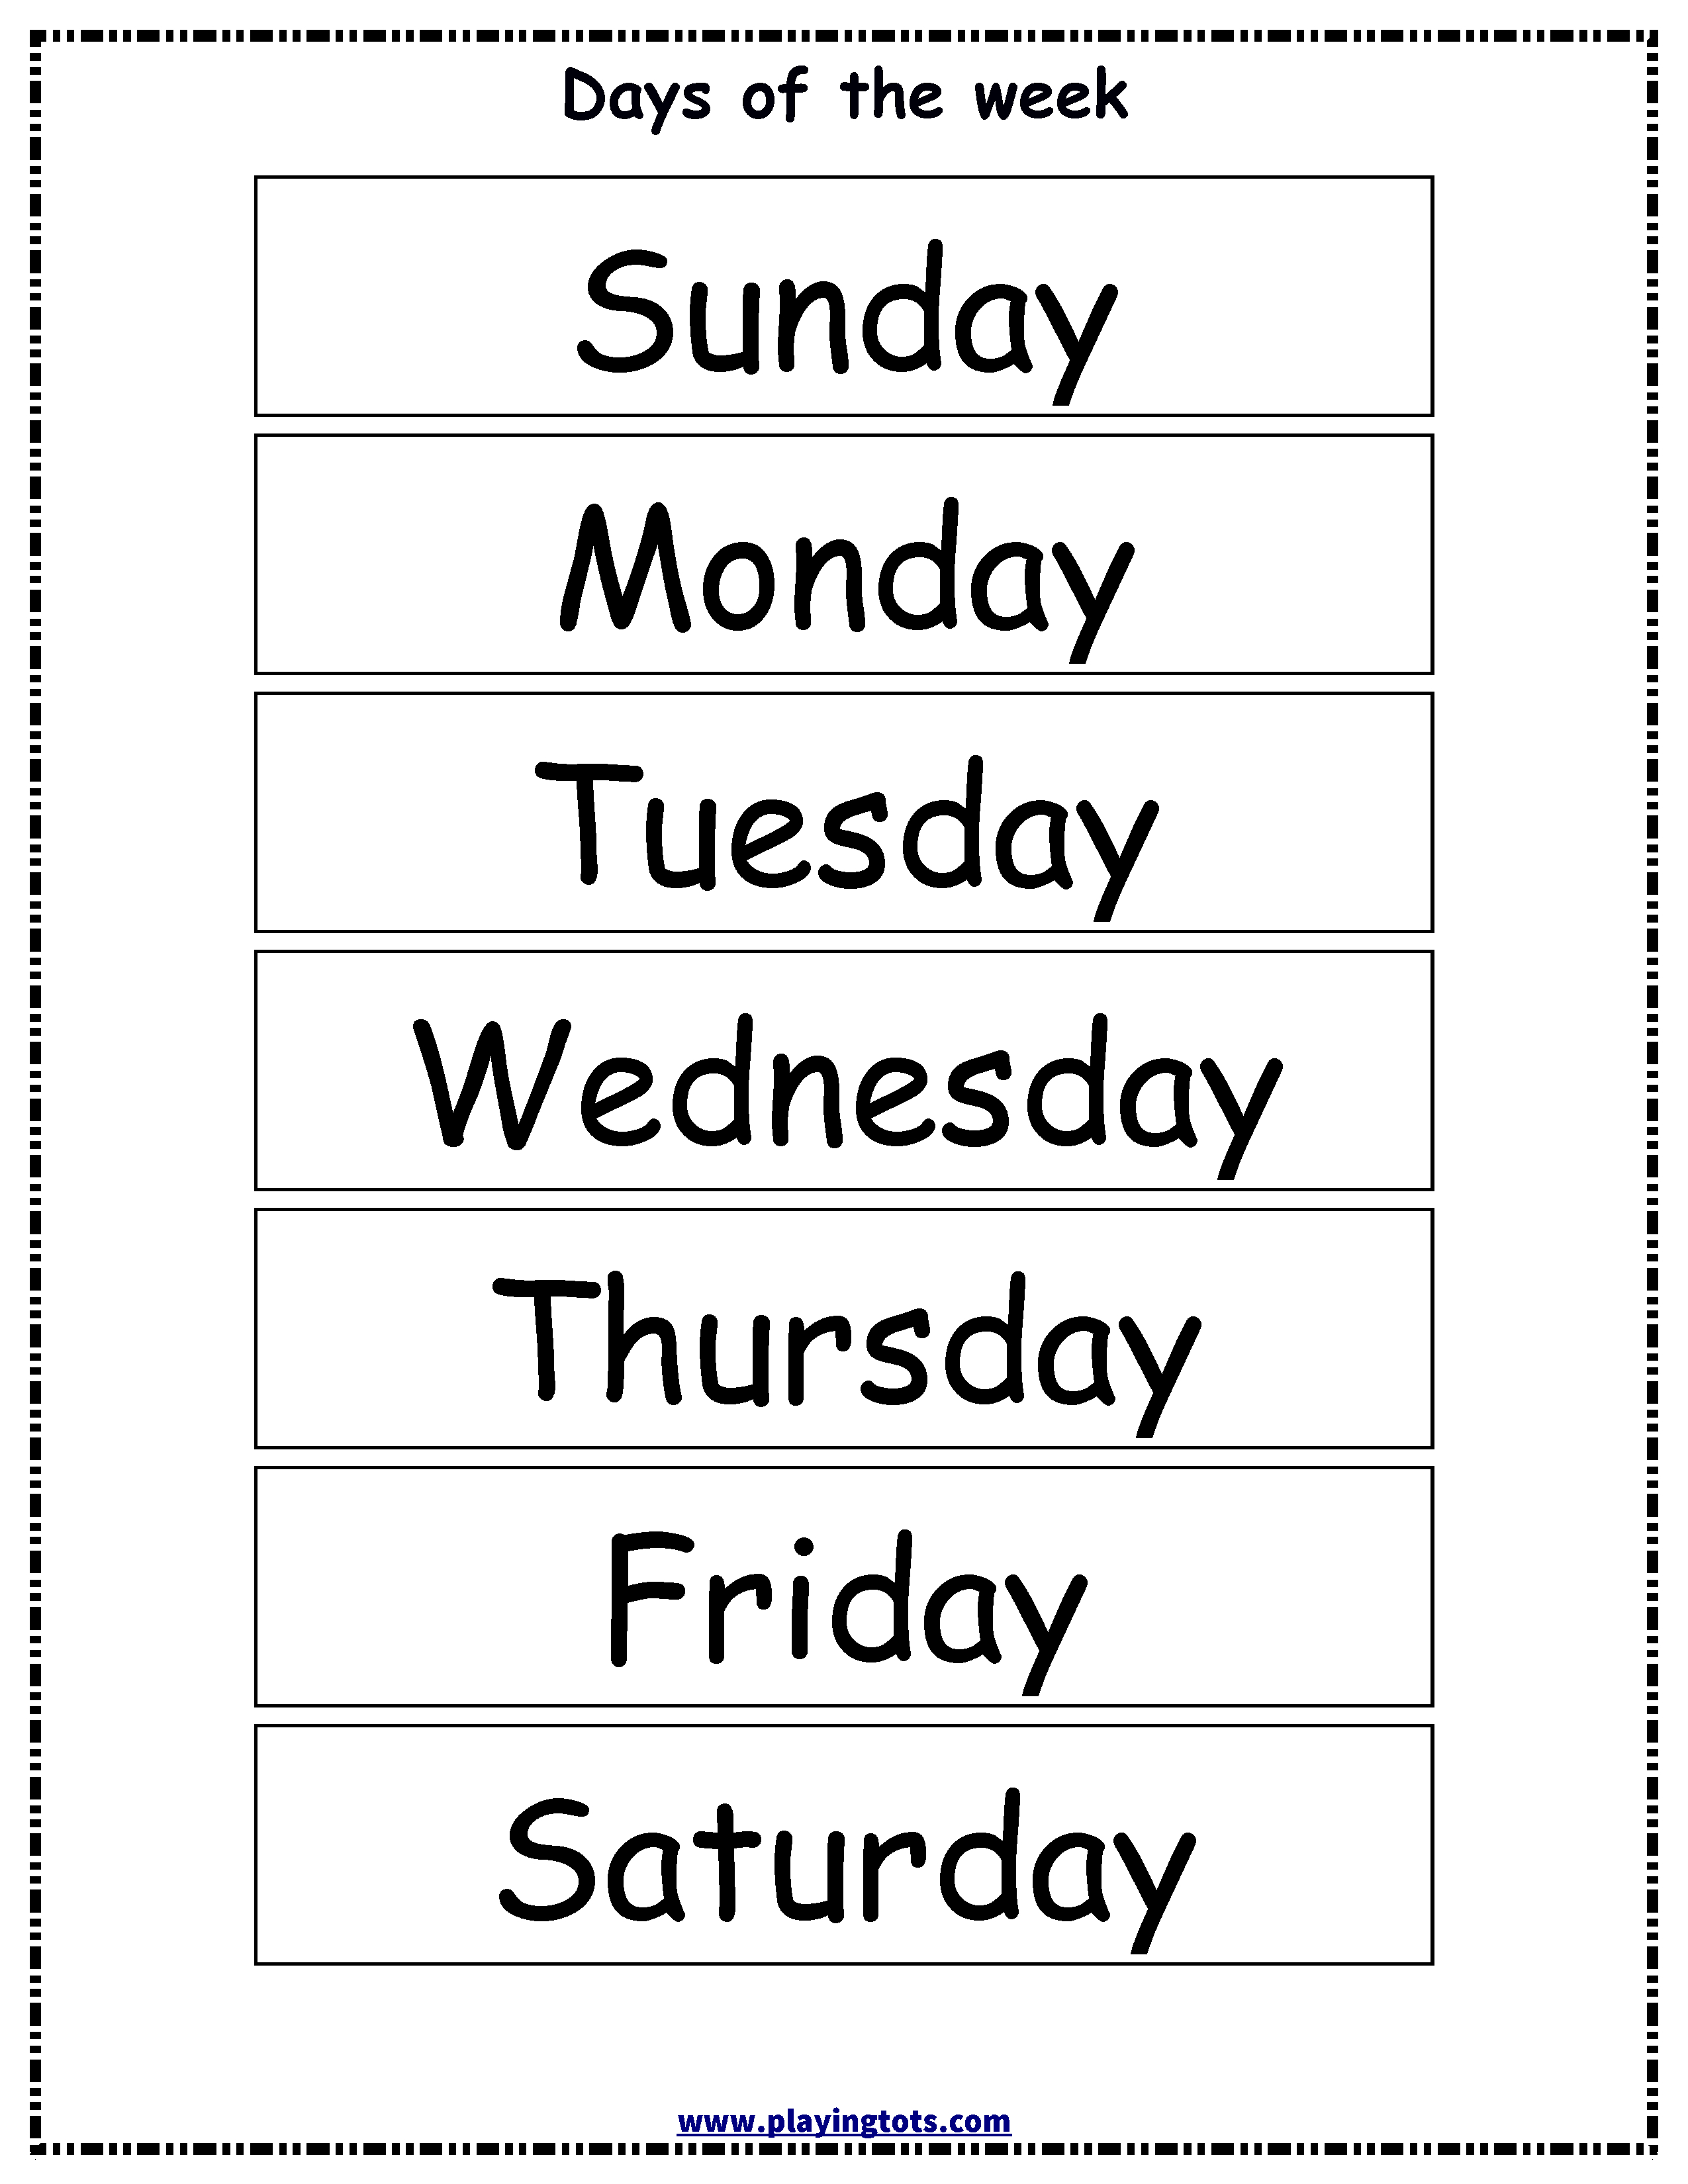 Free Printable Days Of The Week Chart | Classroom Ideas | Learning - Free Printable Days Of The Week